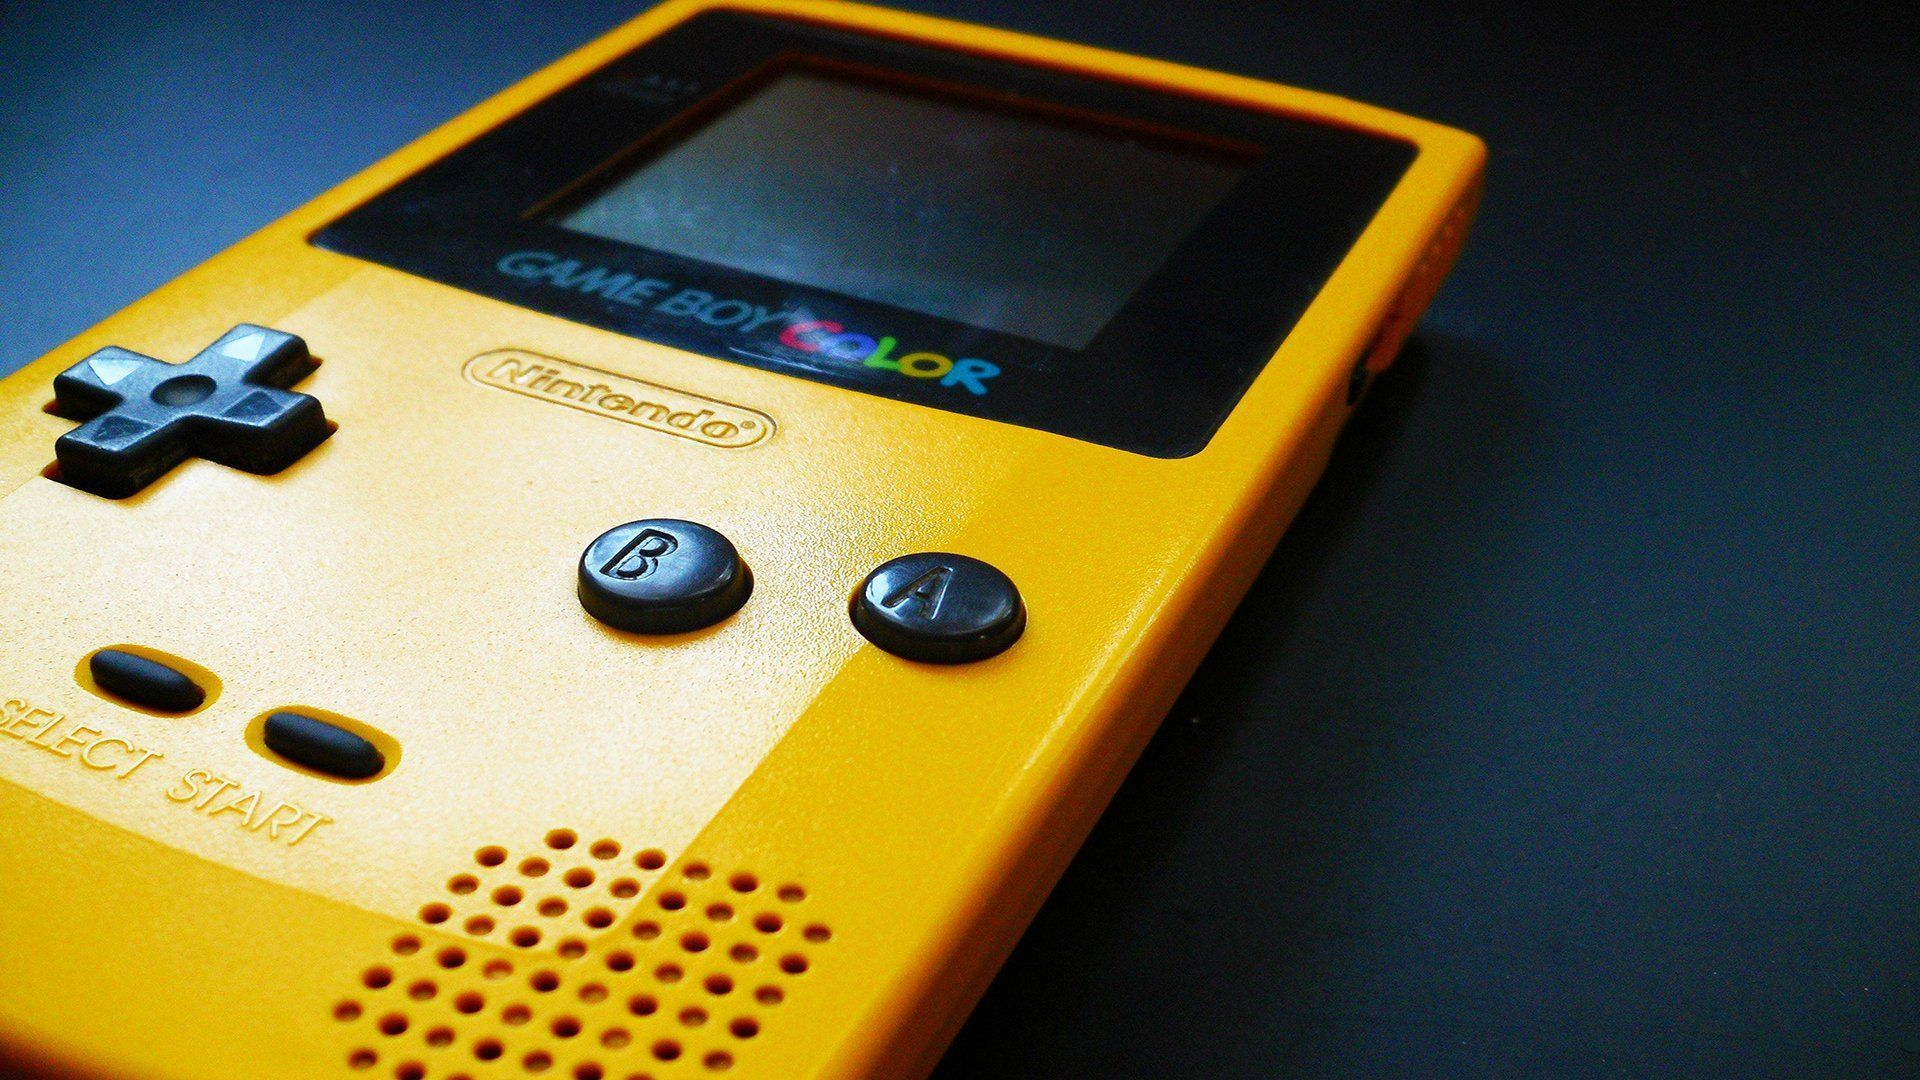 /10-best-game-boy-color-games-ranked-by-sales-z4r37hp feature image